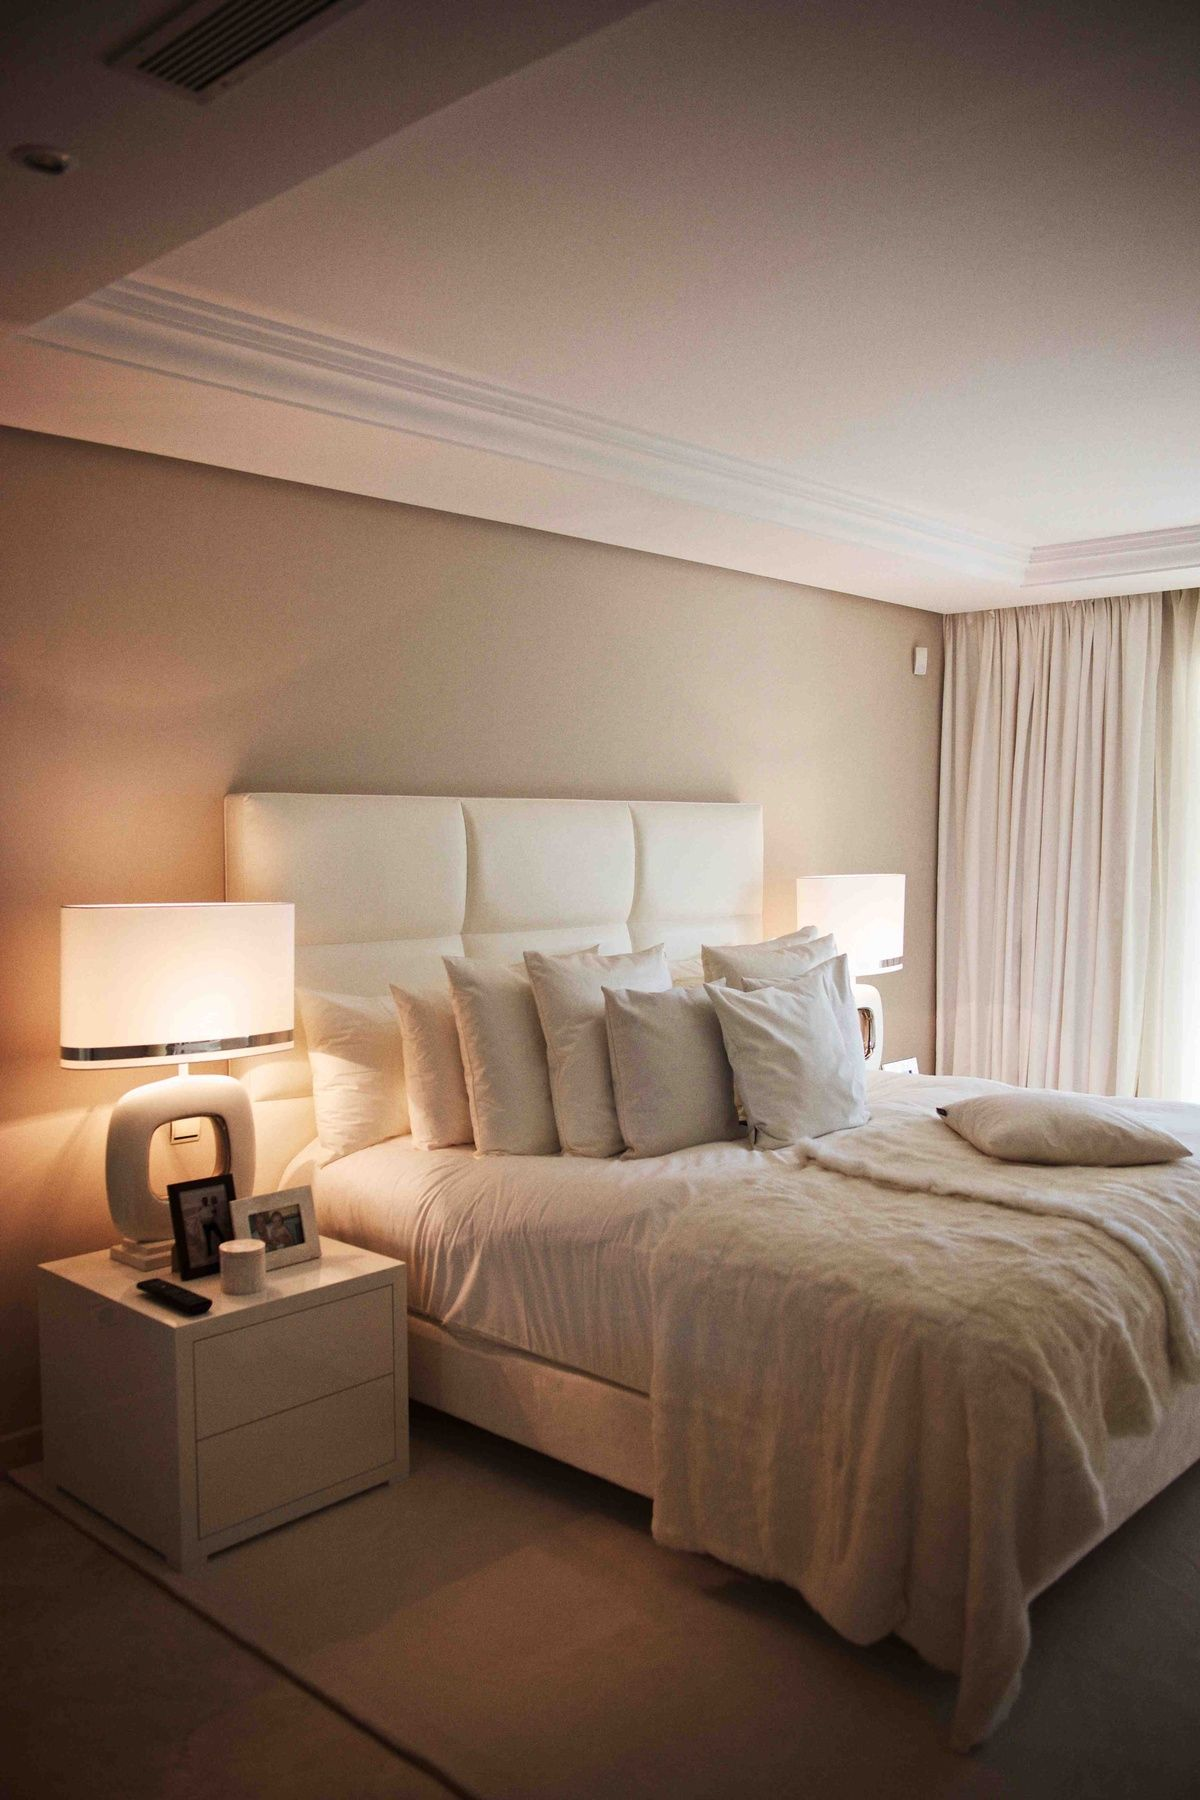 feng shui bedroom furniture. Feng Shui Bedroom - Neutrals Relaxing -Feng Design Your With A Professional Consultation At The Link. Furniture C